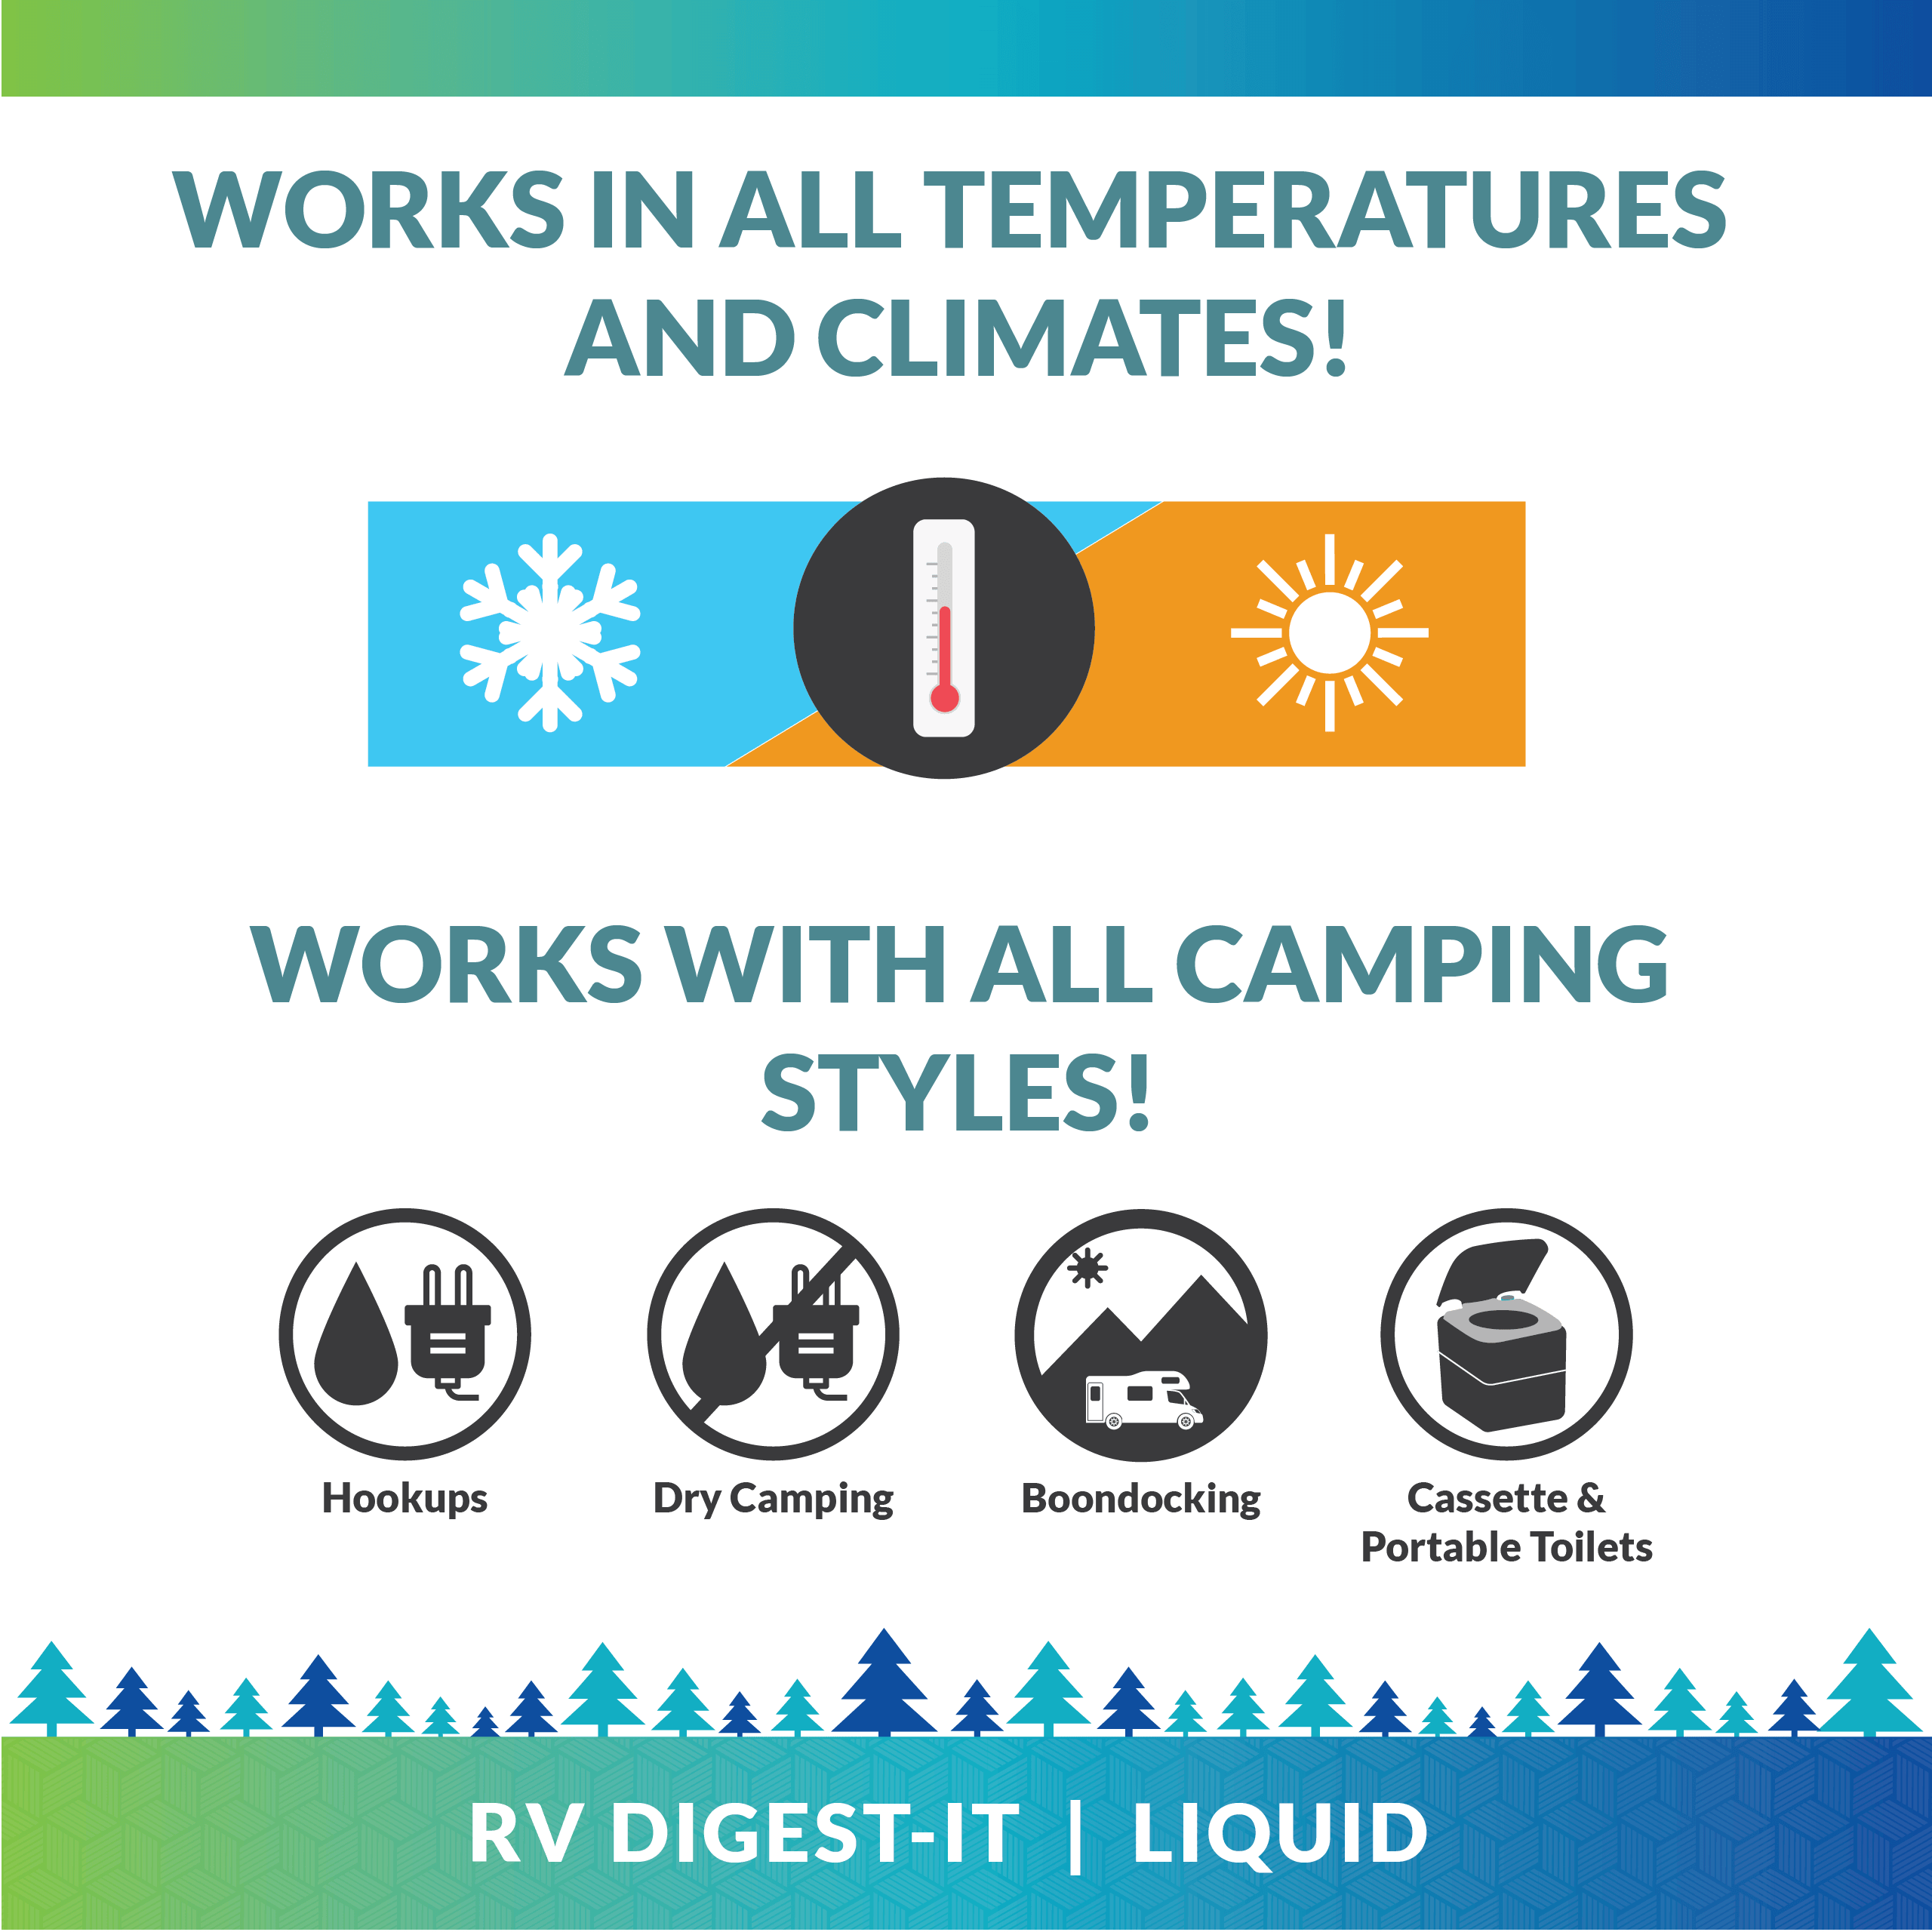 Works in all temperatures and climates, Unique RV Digest-It